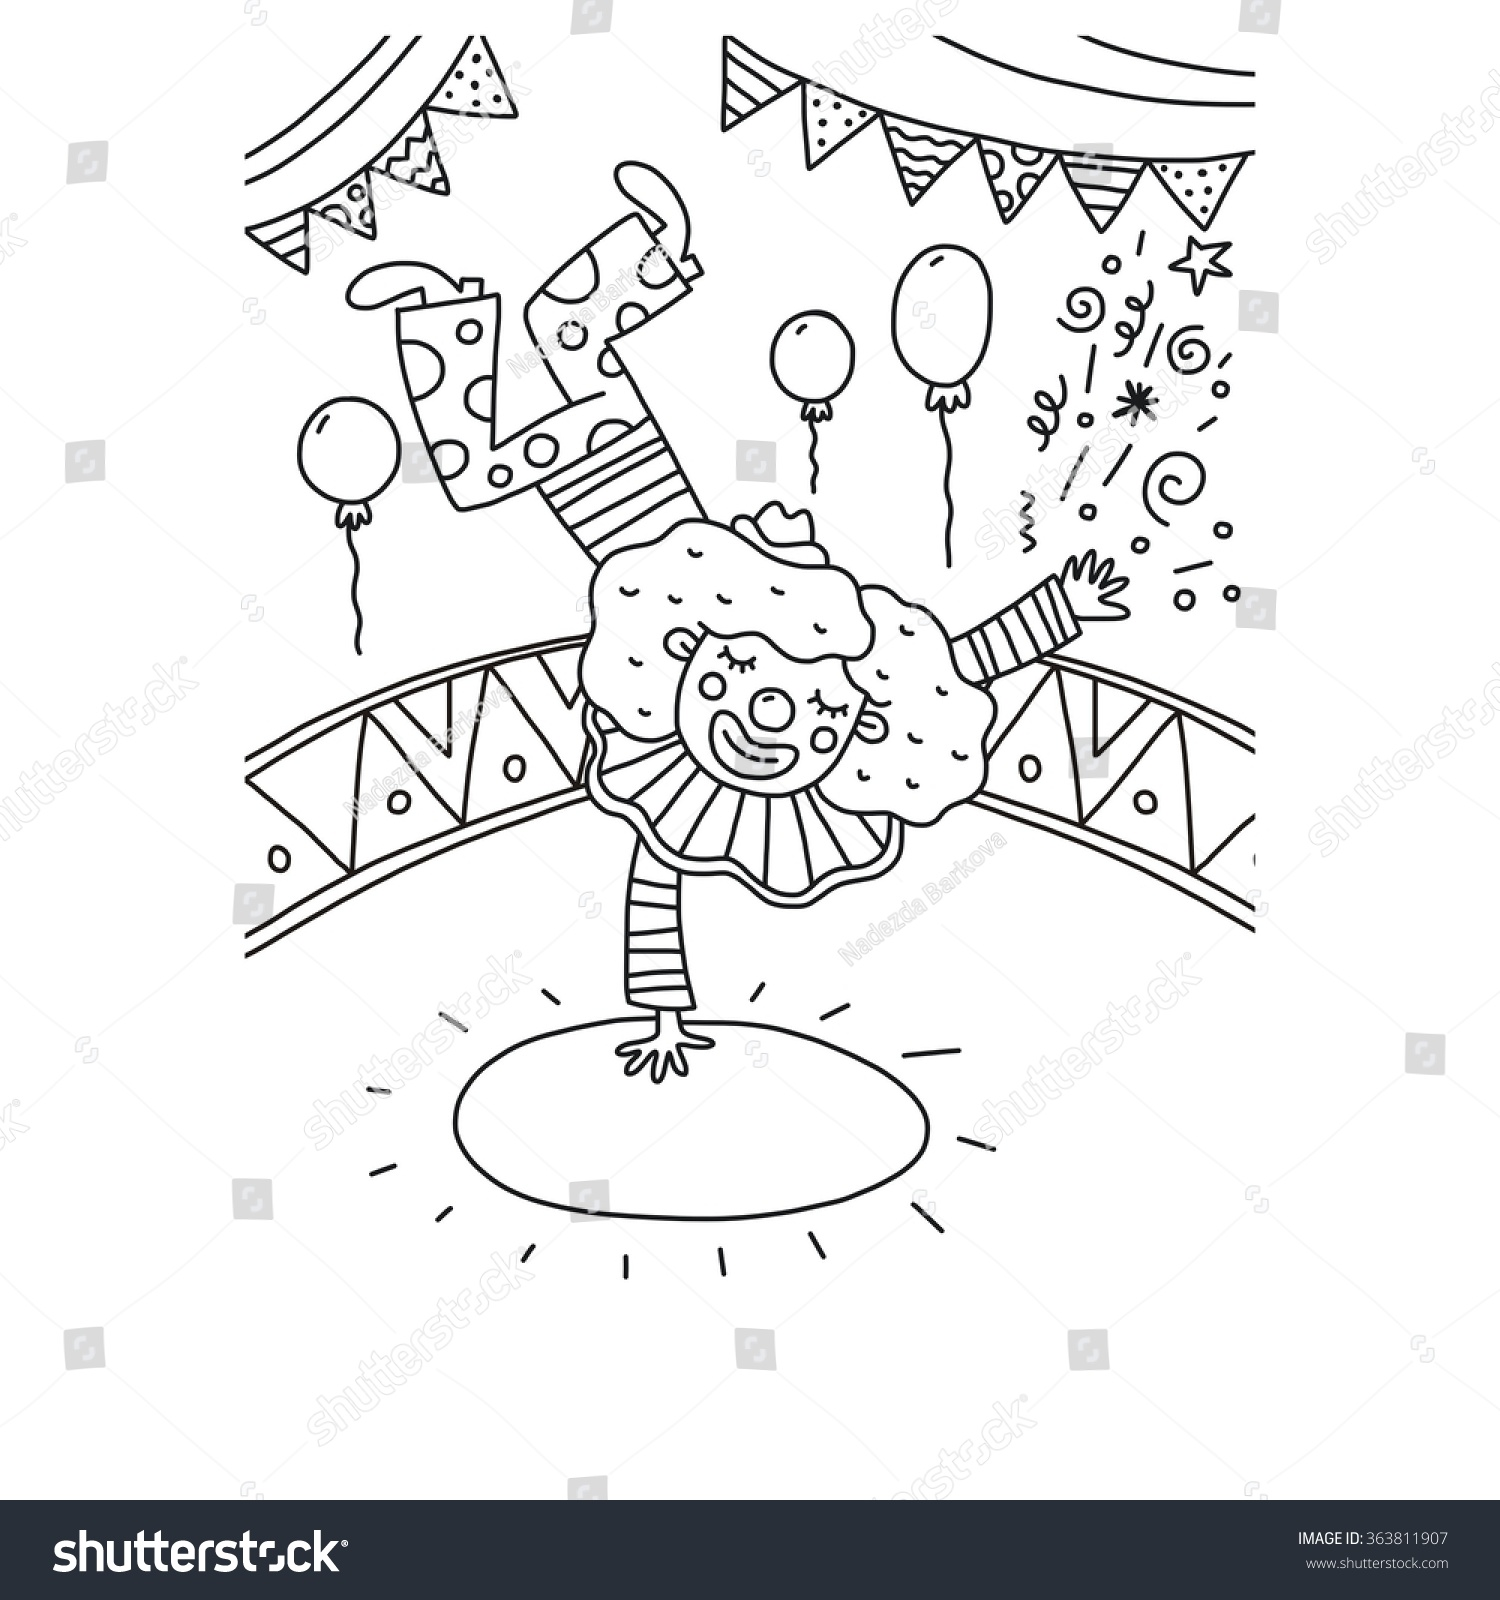 Coloring Page Funny Clown Balloon Stock Vector (Royalty Free ...